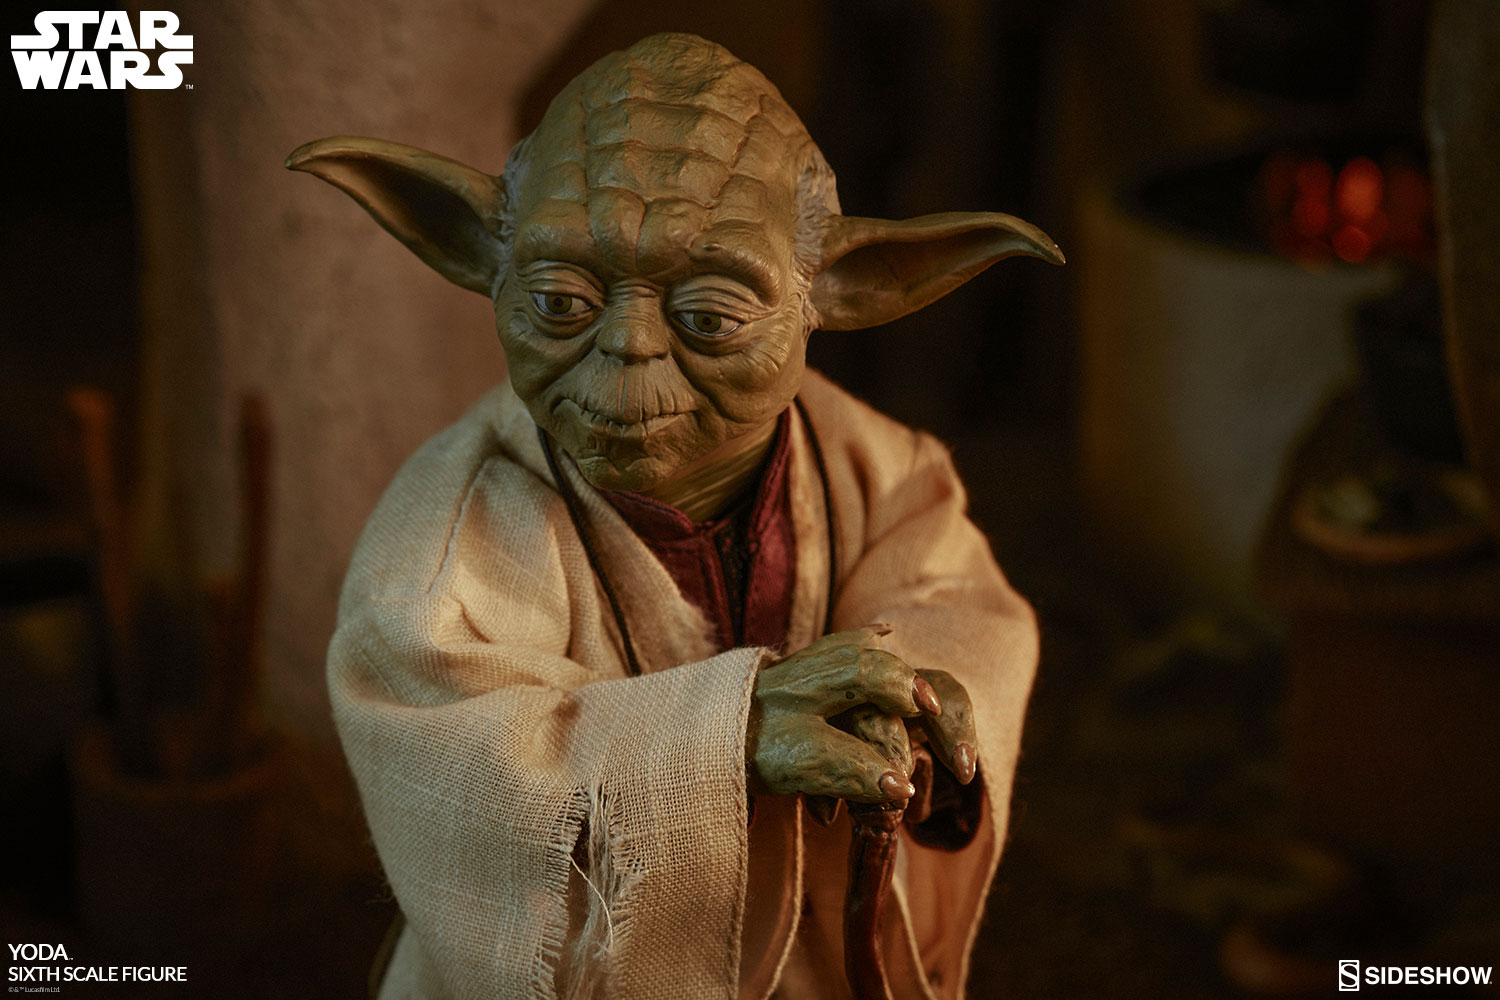 Star Wars Yoda Sixth Scale Figure By Sideshow Collectibles